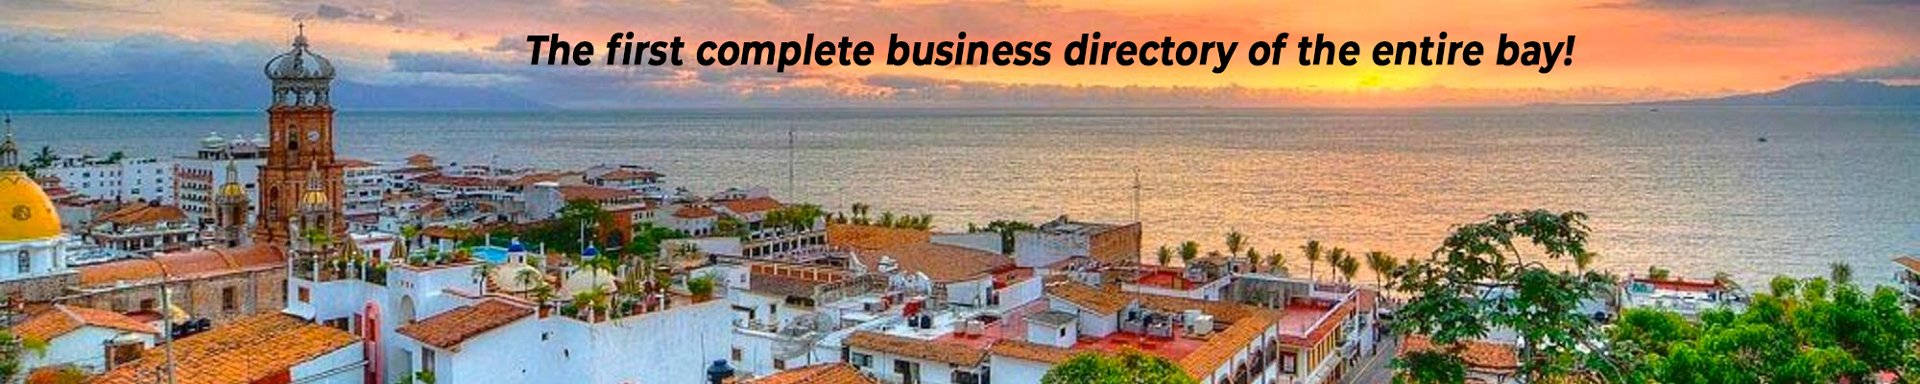 Best of Banderas Bay Business Directory